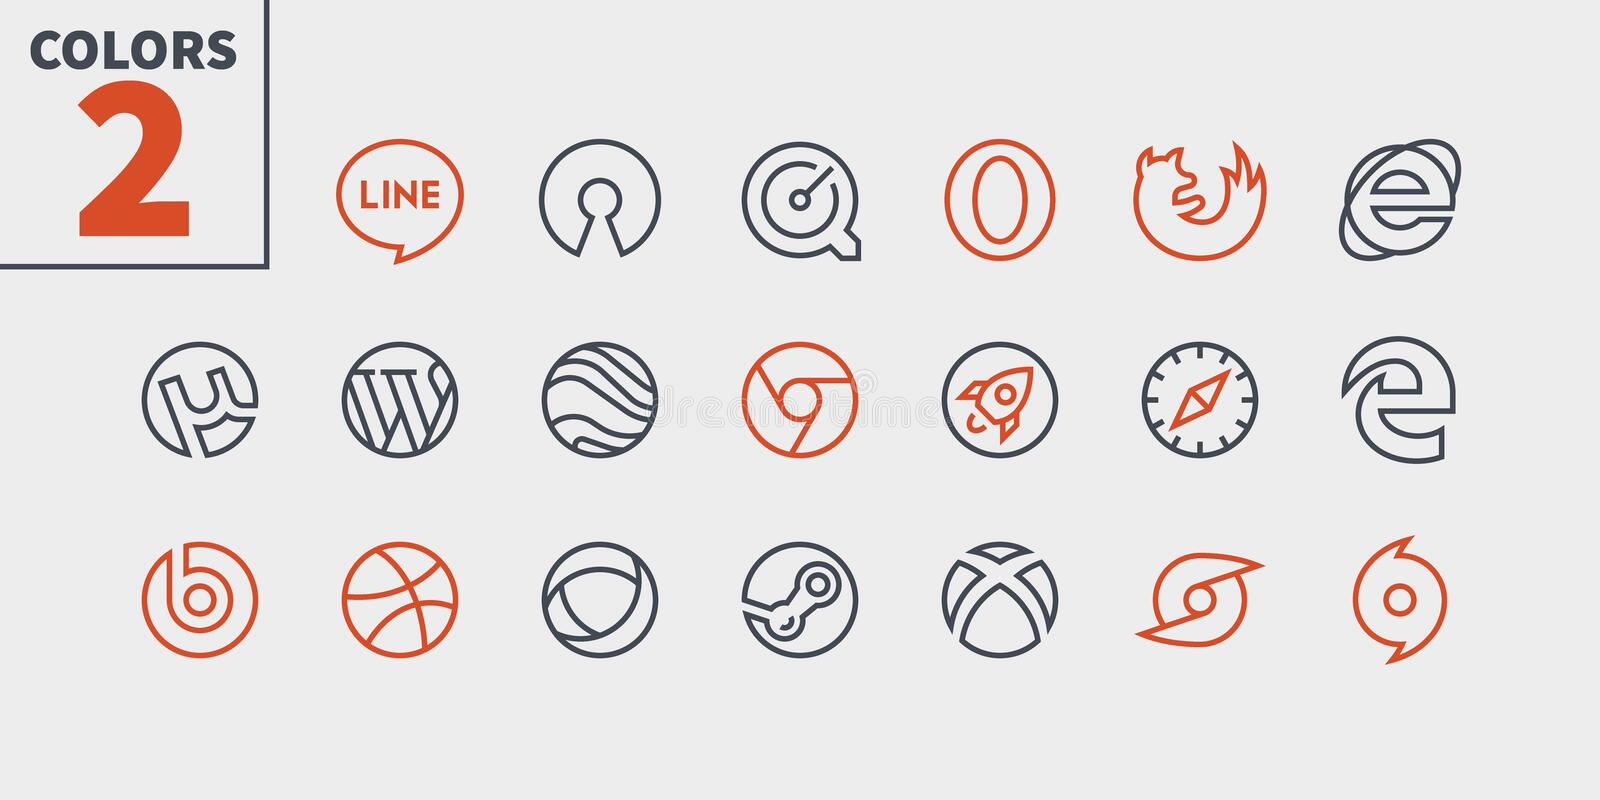 Logos UI Pixel Perfect Well-crafted Vector Thin Line Icons 48x48 Ready for 24x24 Grid for Web Graphics and Apps with. Editable Stroke. Simple Minimal Pictogram stock illustration